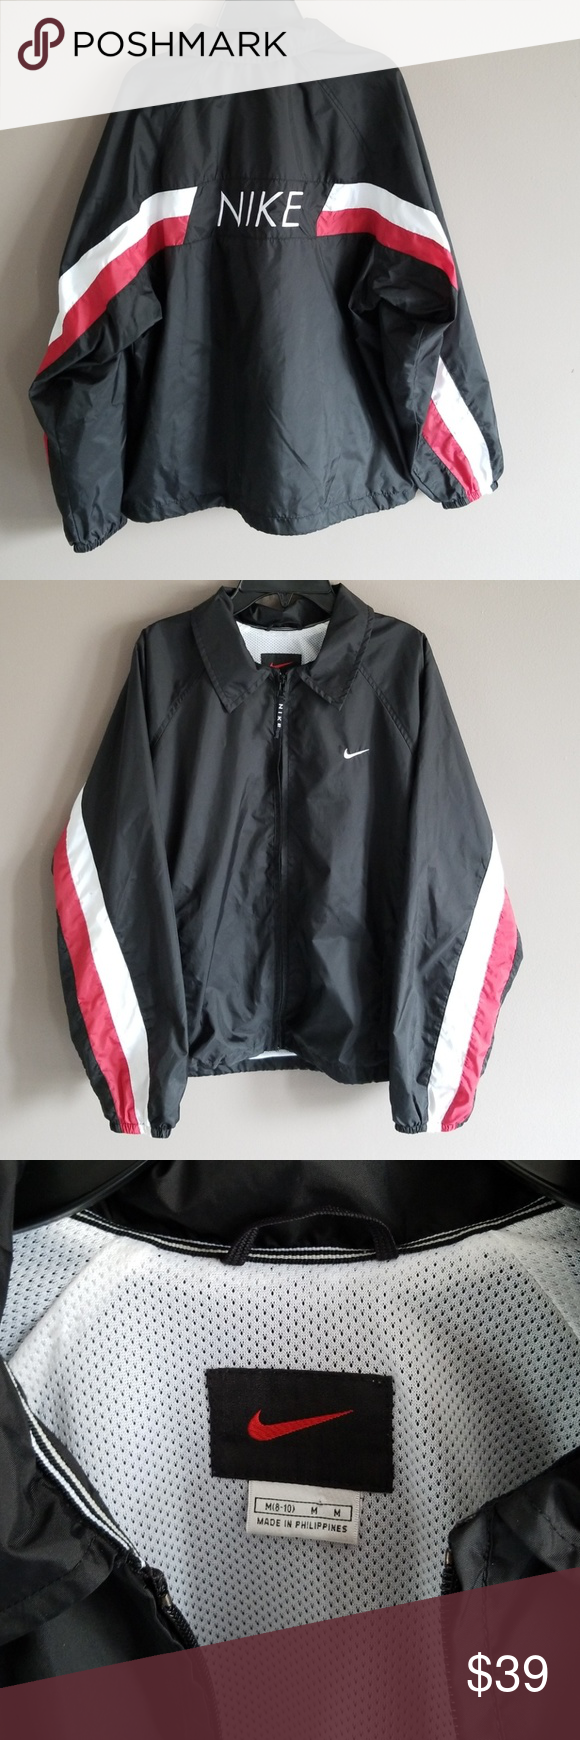 a1e7196e0 Vintage Nike Logo Black White Red ZipWindbreaker M By Nike, Vintage Fully  Lined Black windbreaker Jacket, Red and white striped design down arms, ...